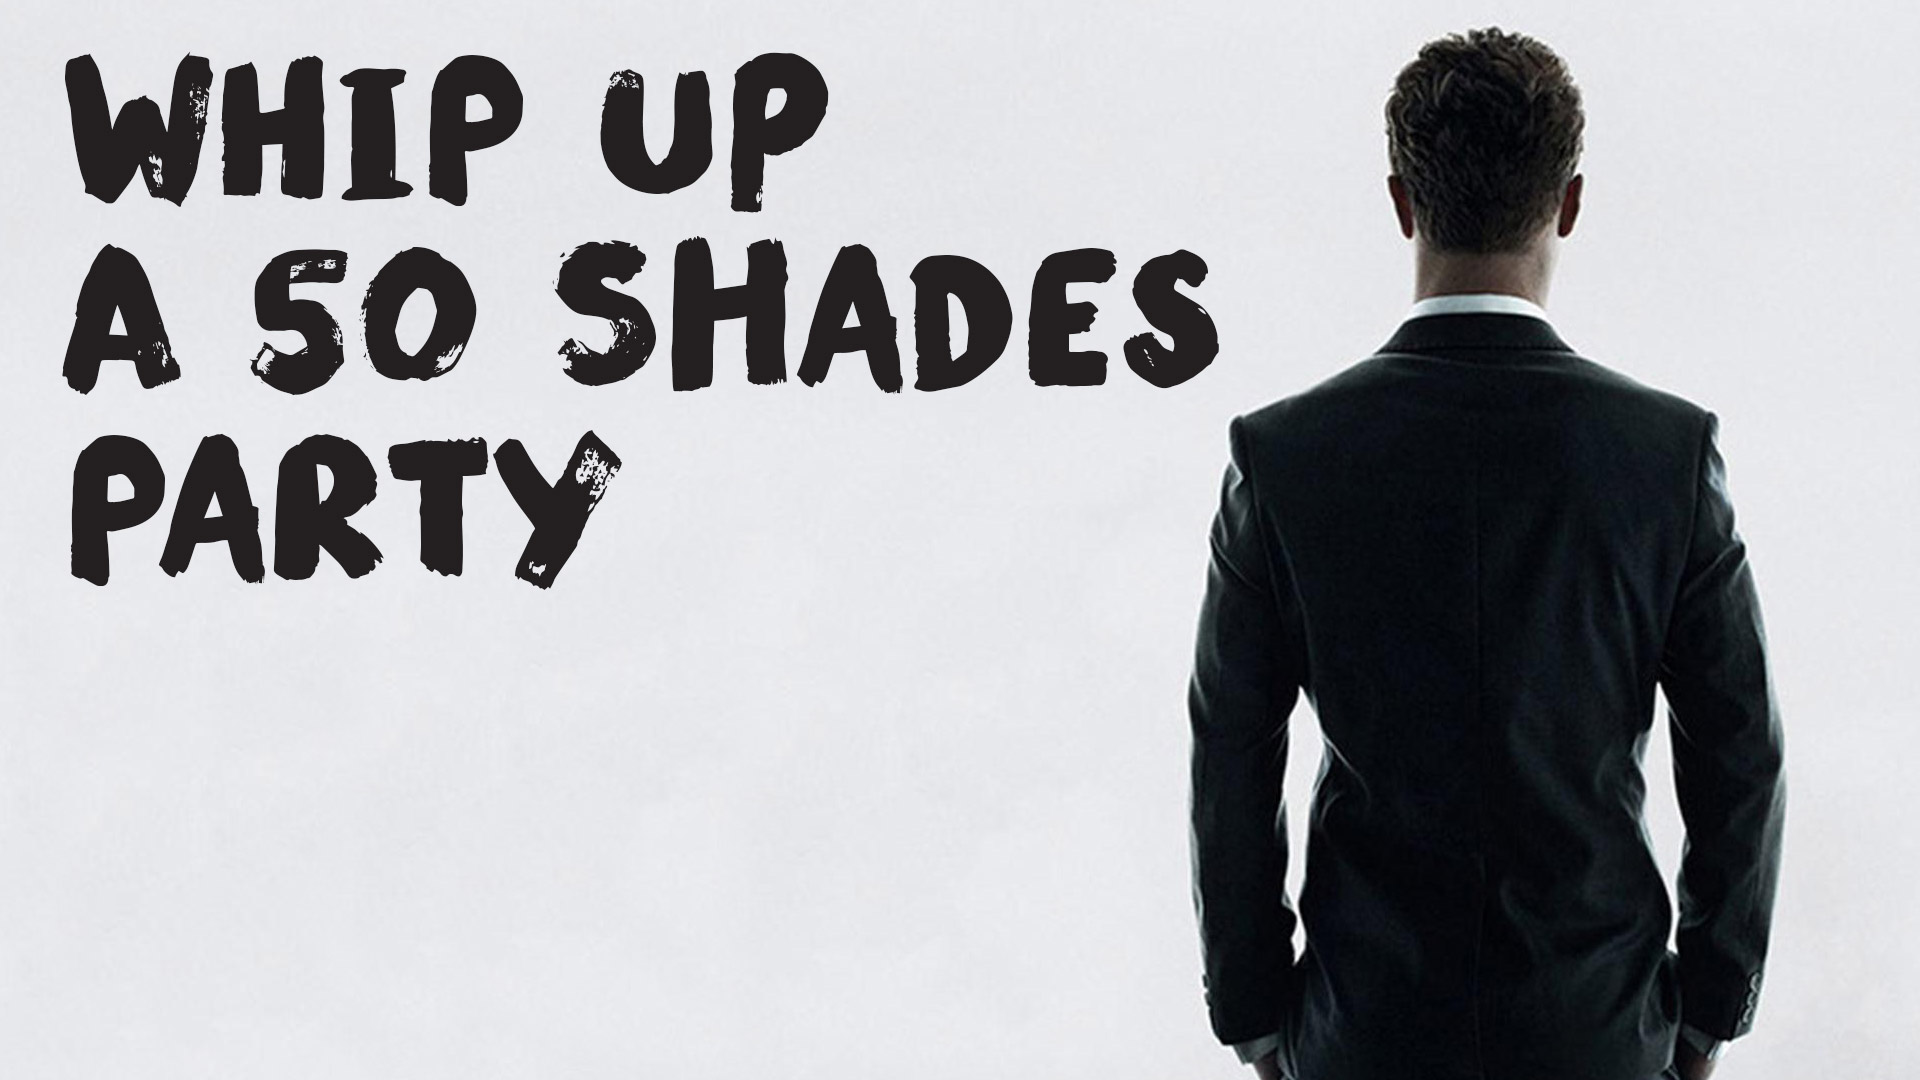 Whip Up a 'Fifty Shades of Grey' Party